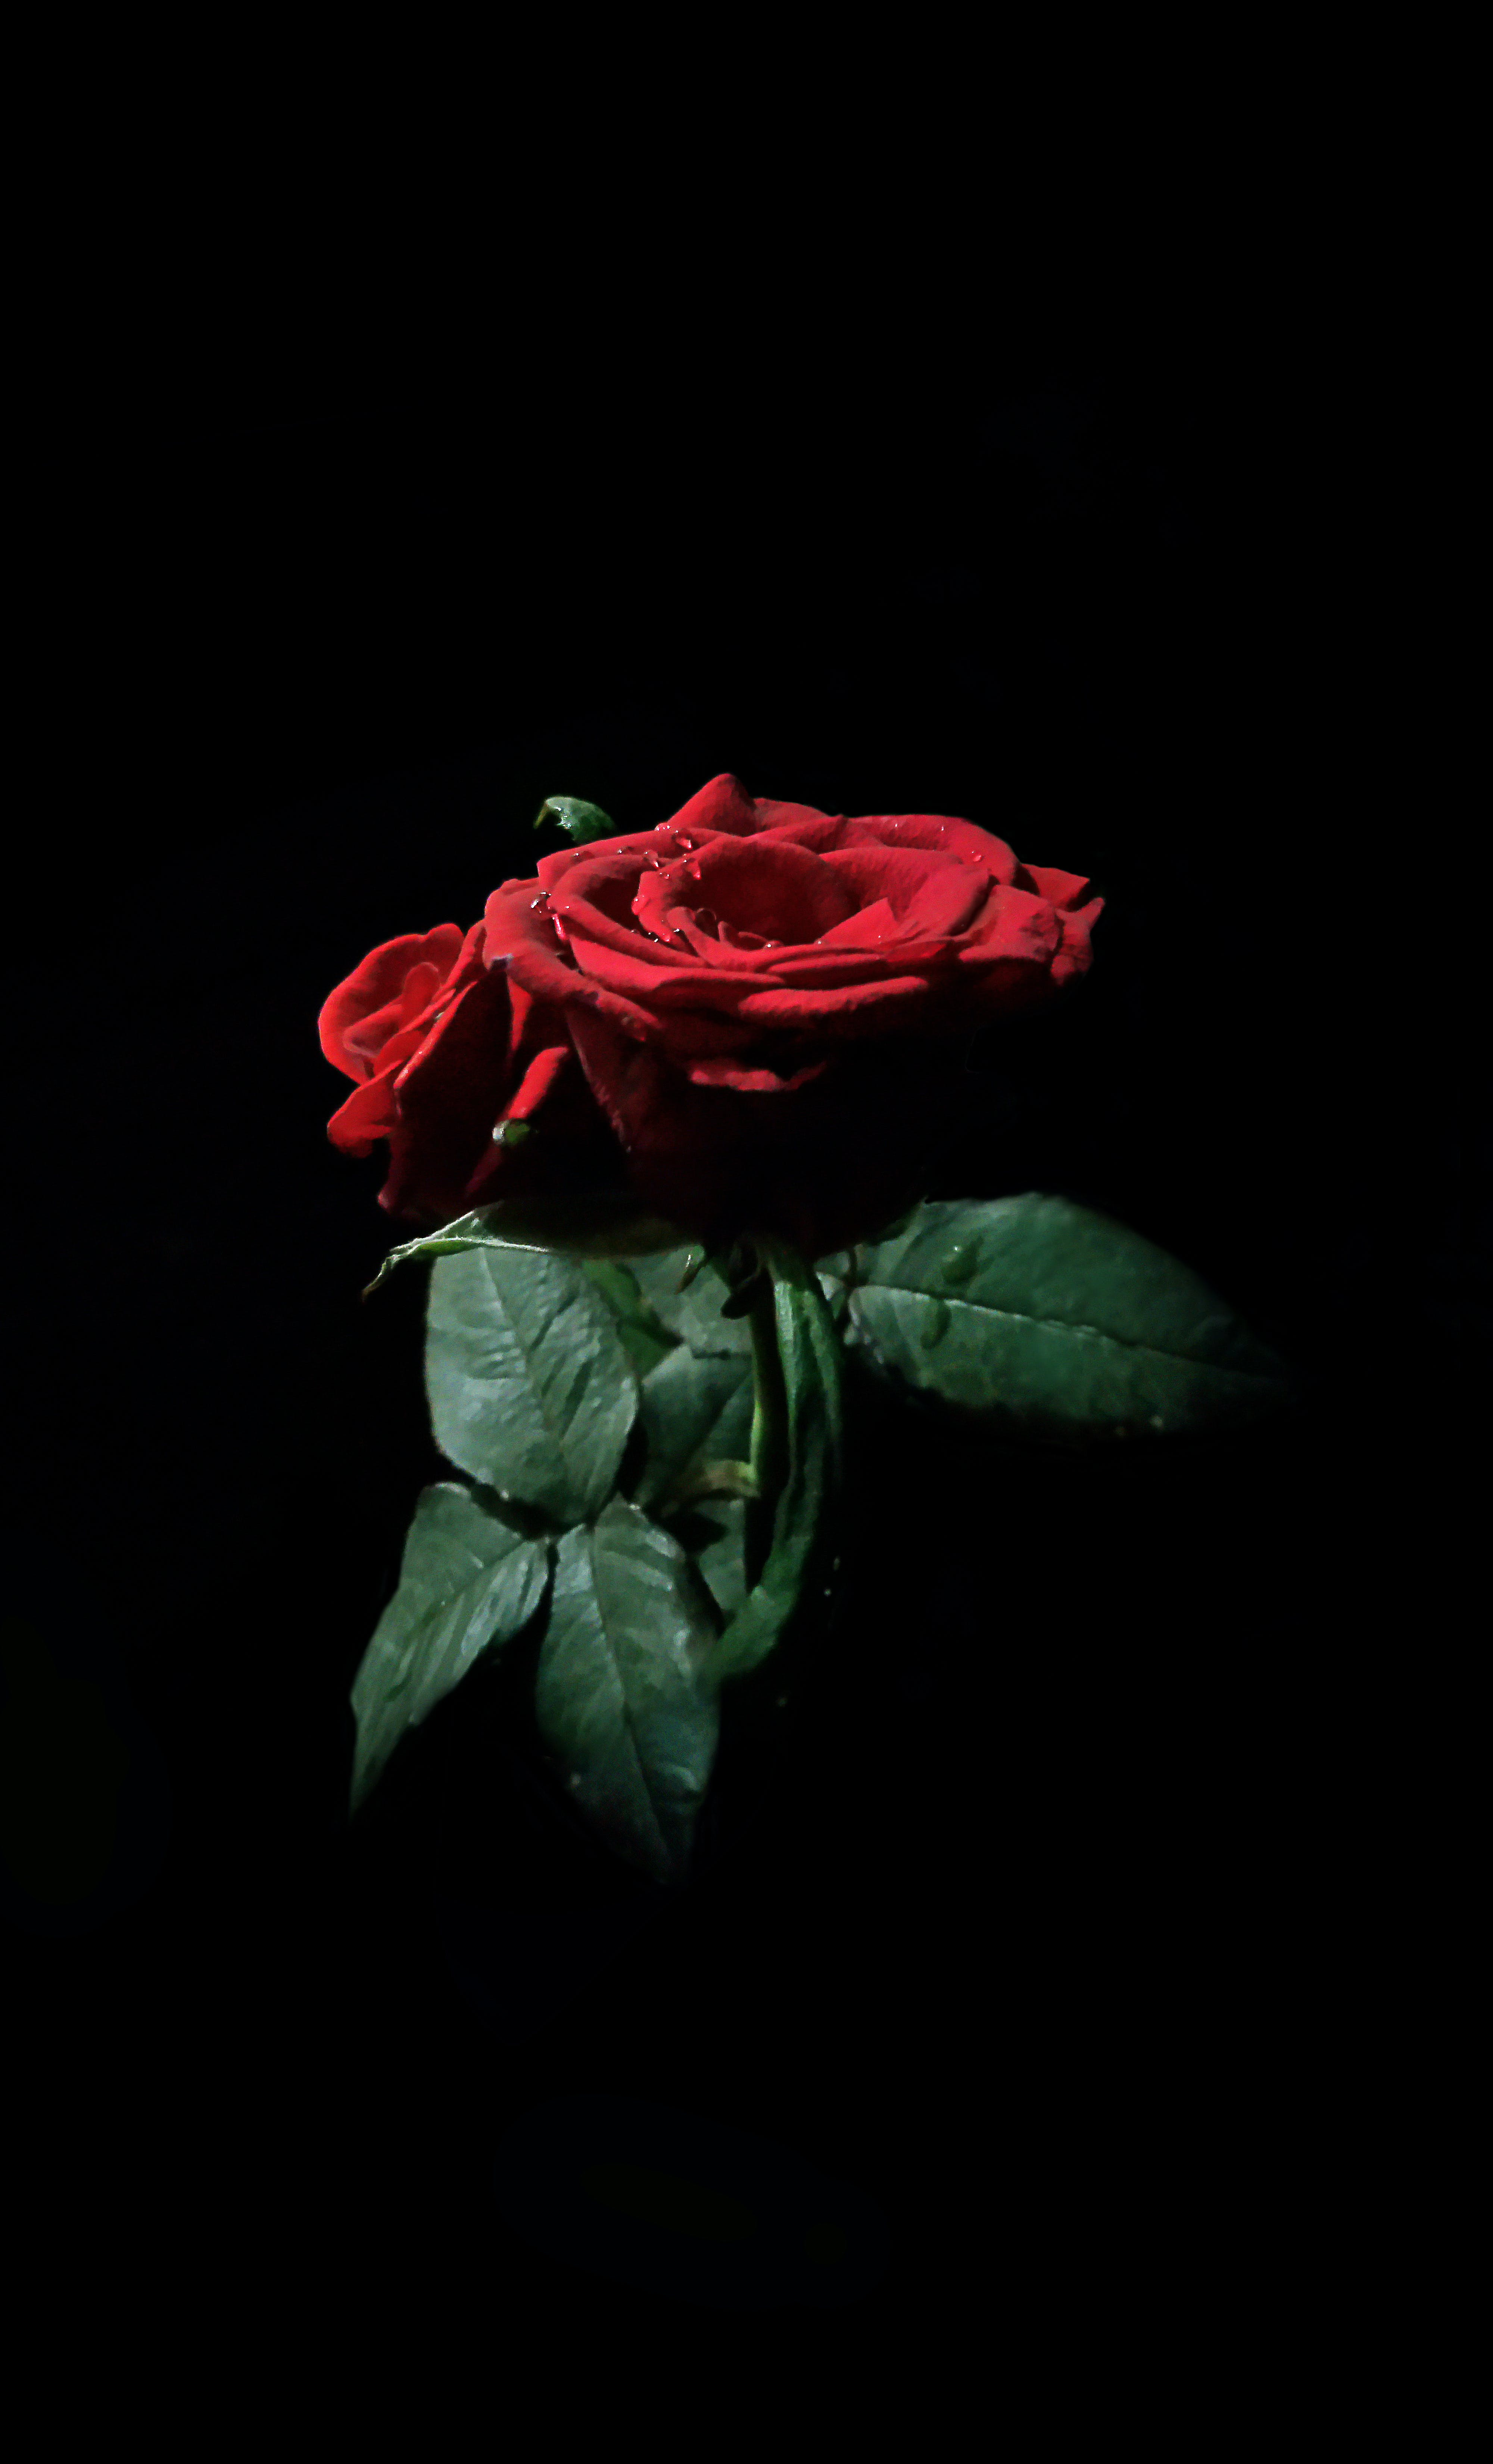 Free stock photo of black background, darkness, night photography, Red Rose